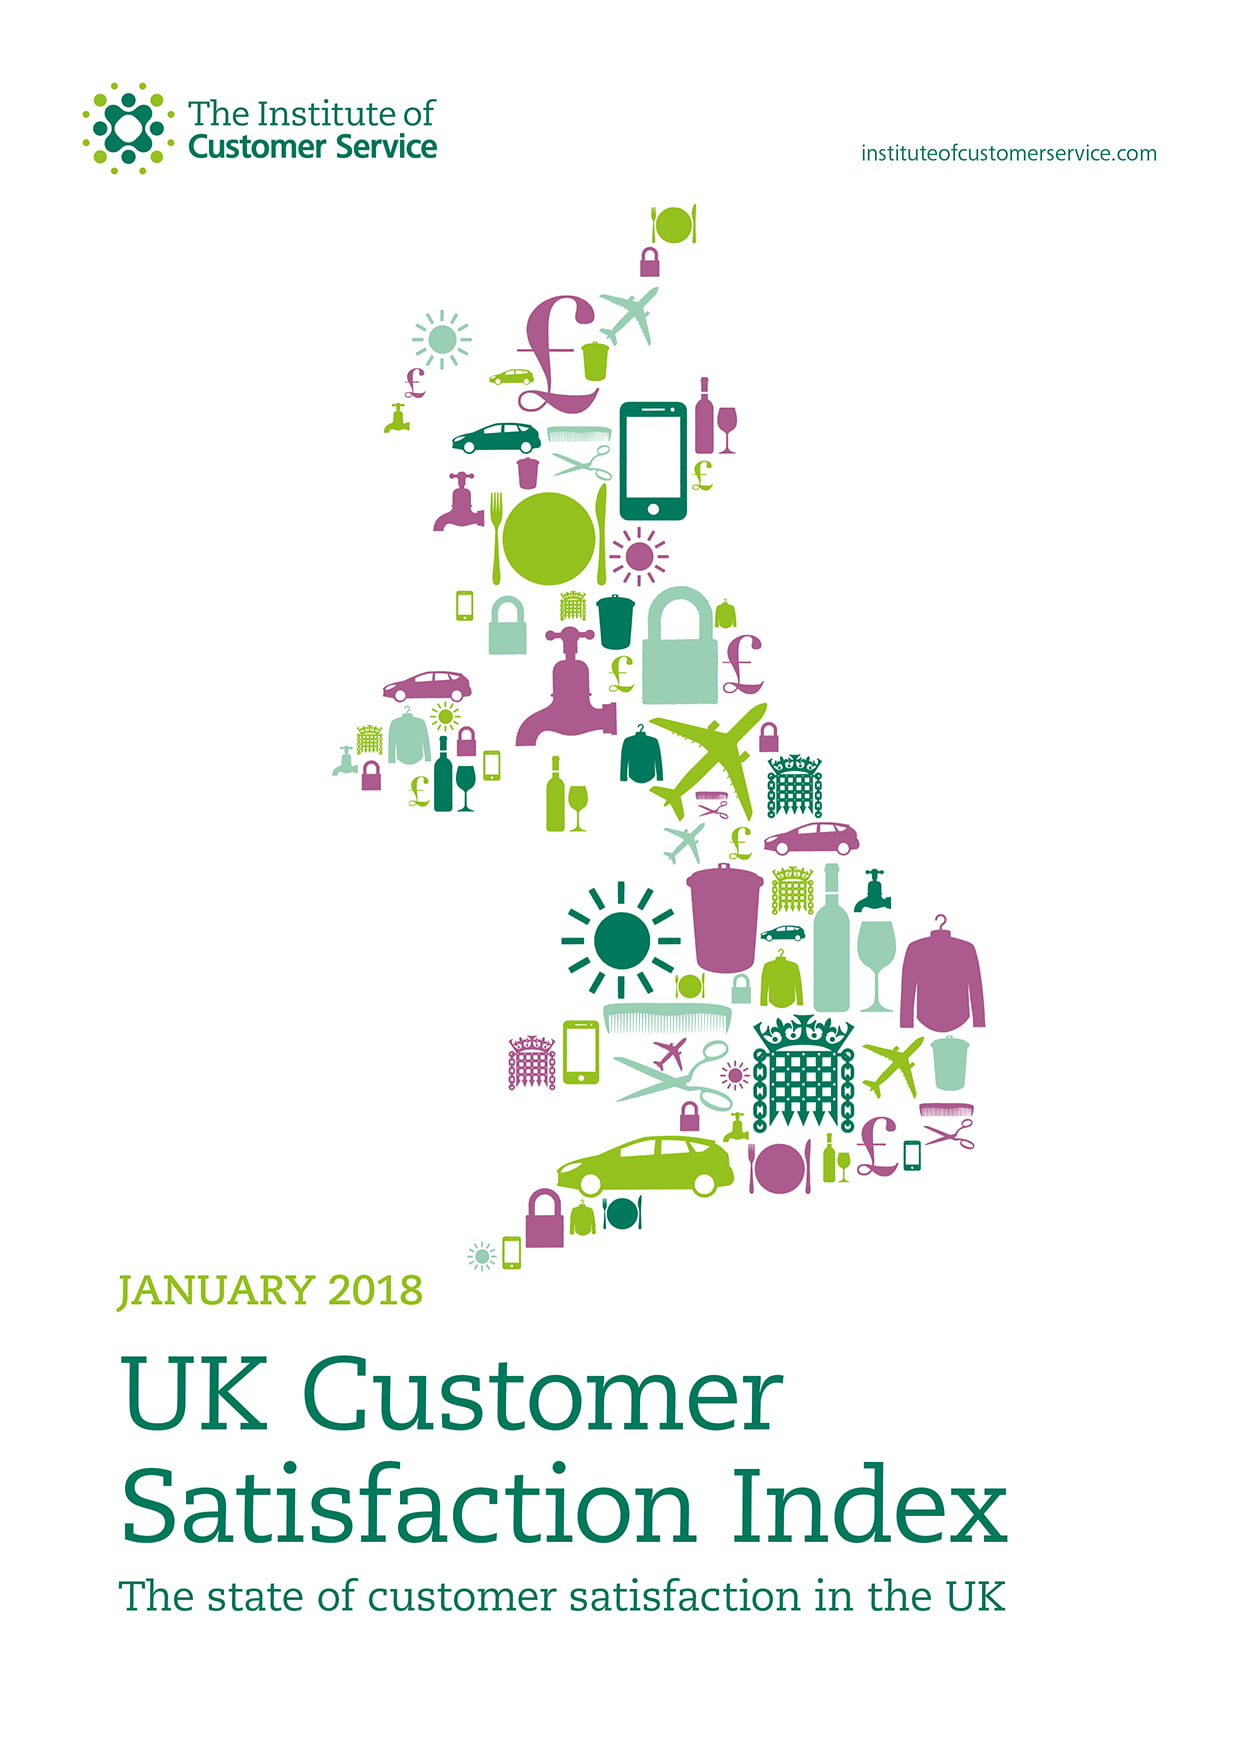 UKCSI: The State Of Customer Satisfaction In The UK – January 2018